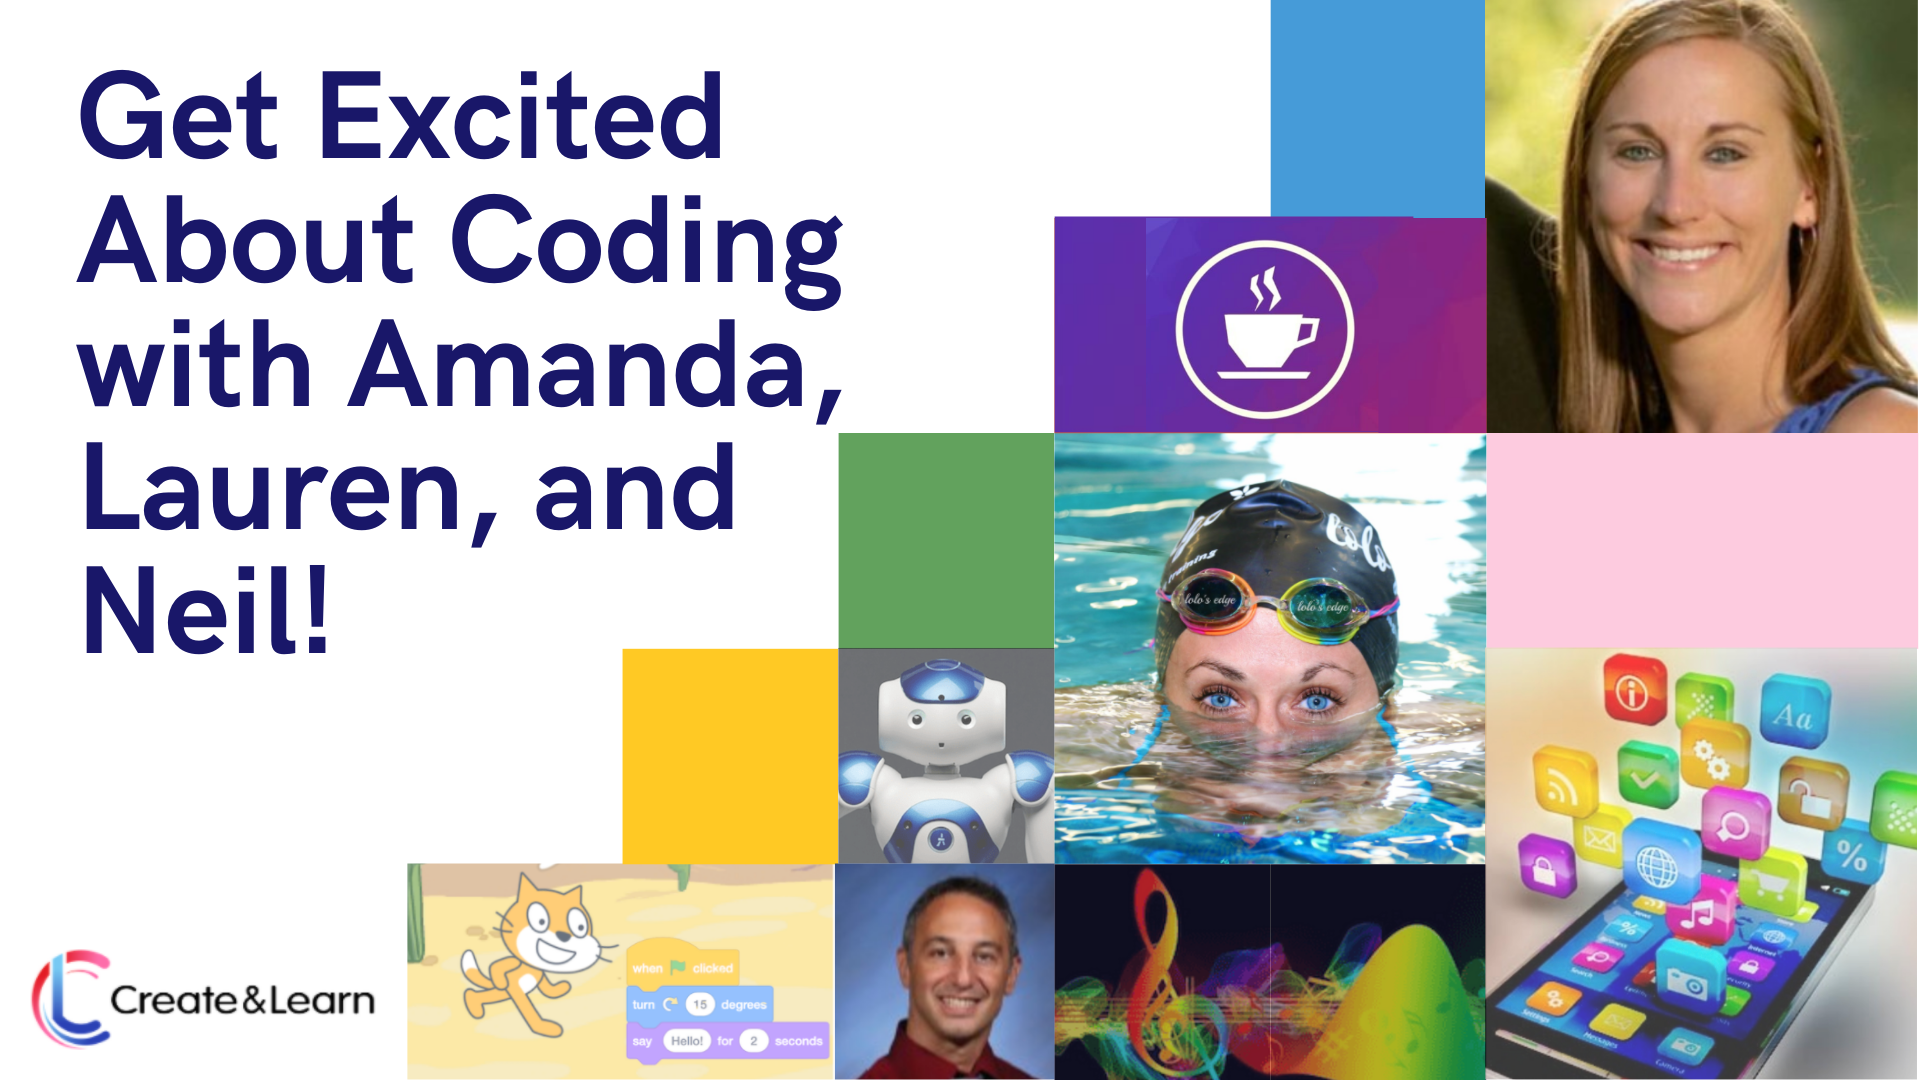 Robot, Swimming & Atari Games - Oh, My! Meet Our Awesome Teachers that Will Get Your Kids Excited About Learning Coding!